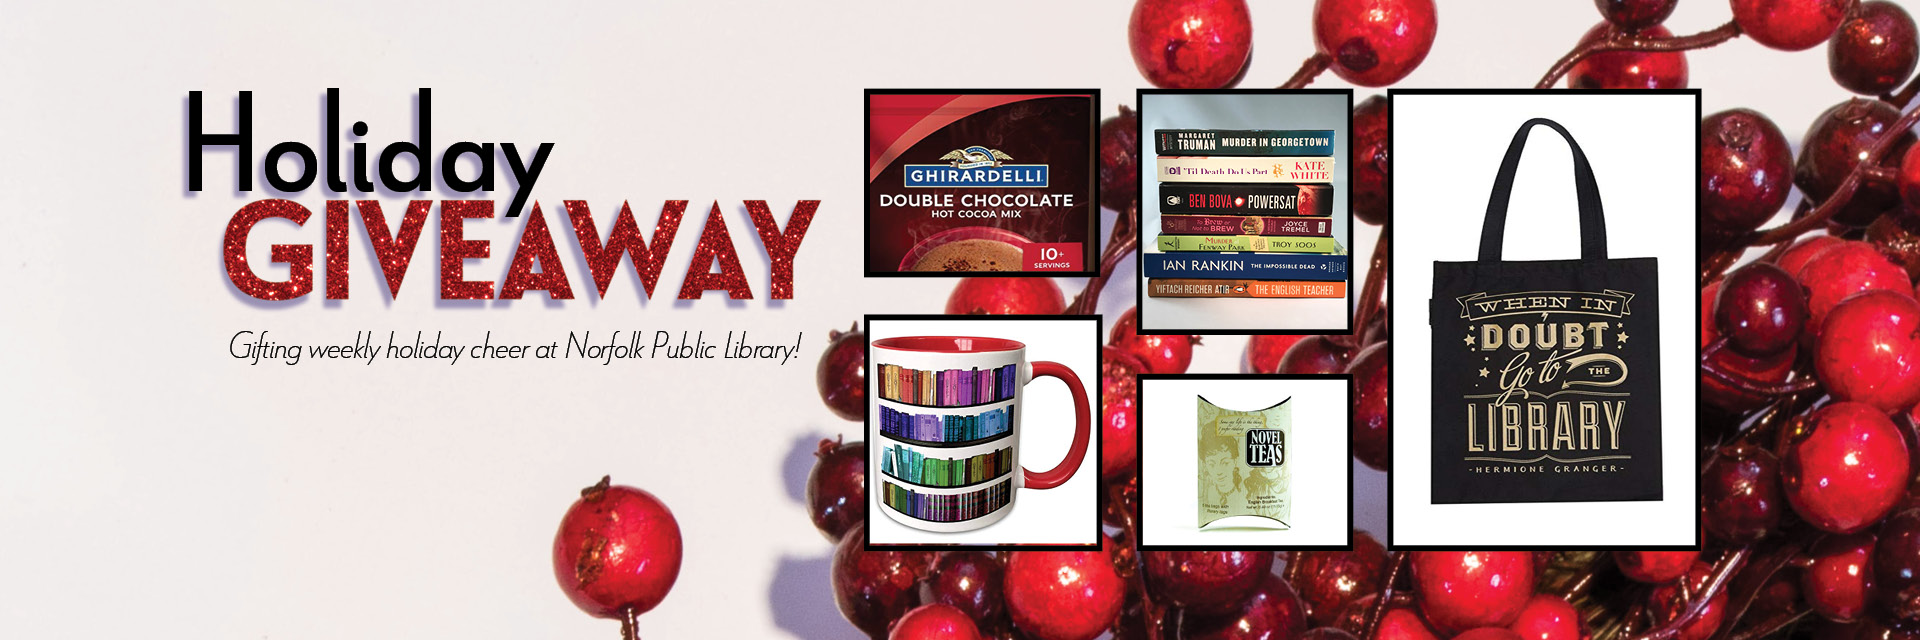 Holiday Giveaway, images of Harry Potter tote bag, rainbow books mug, hot chocolate mix, tea bags, stack of fiction books